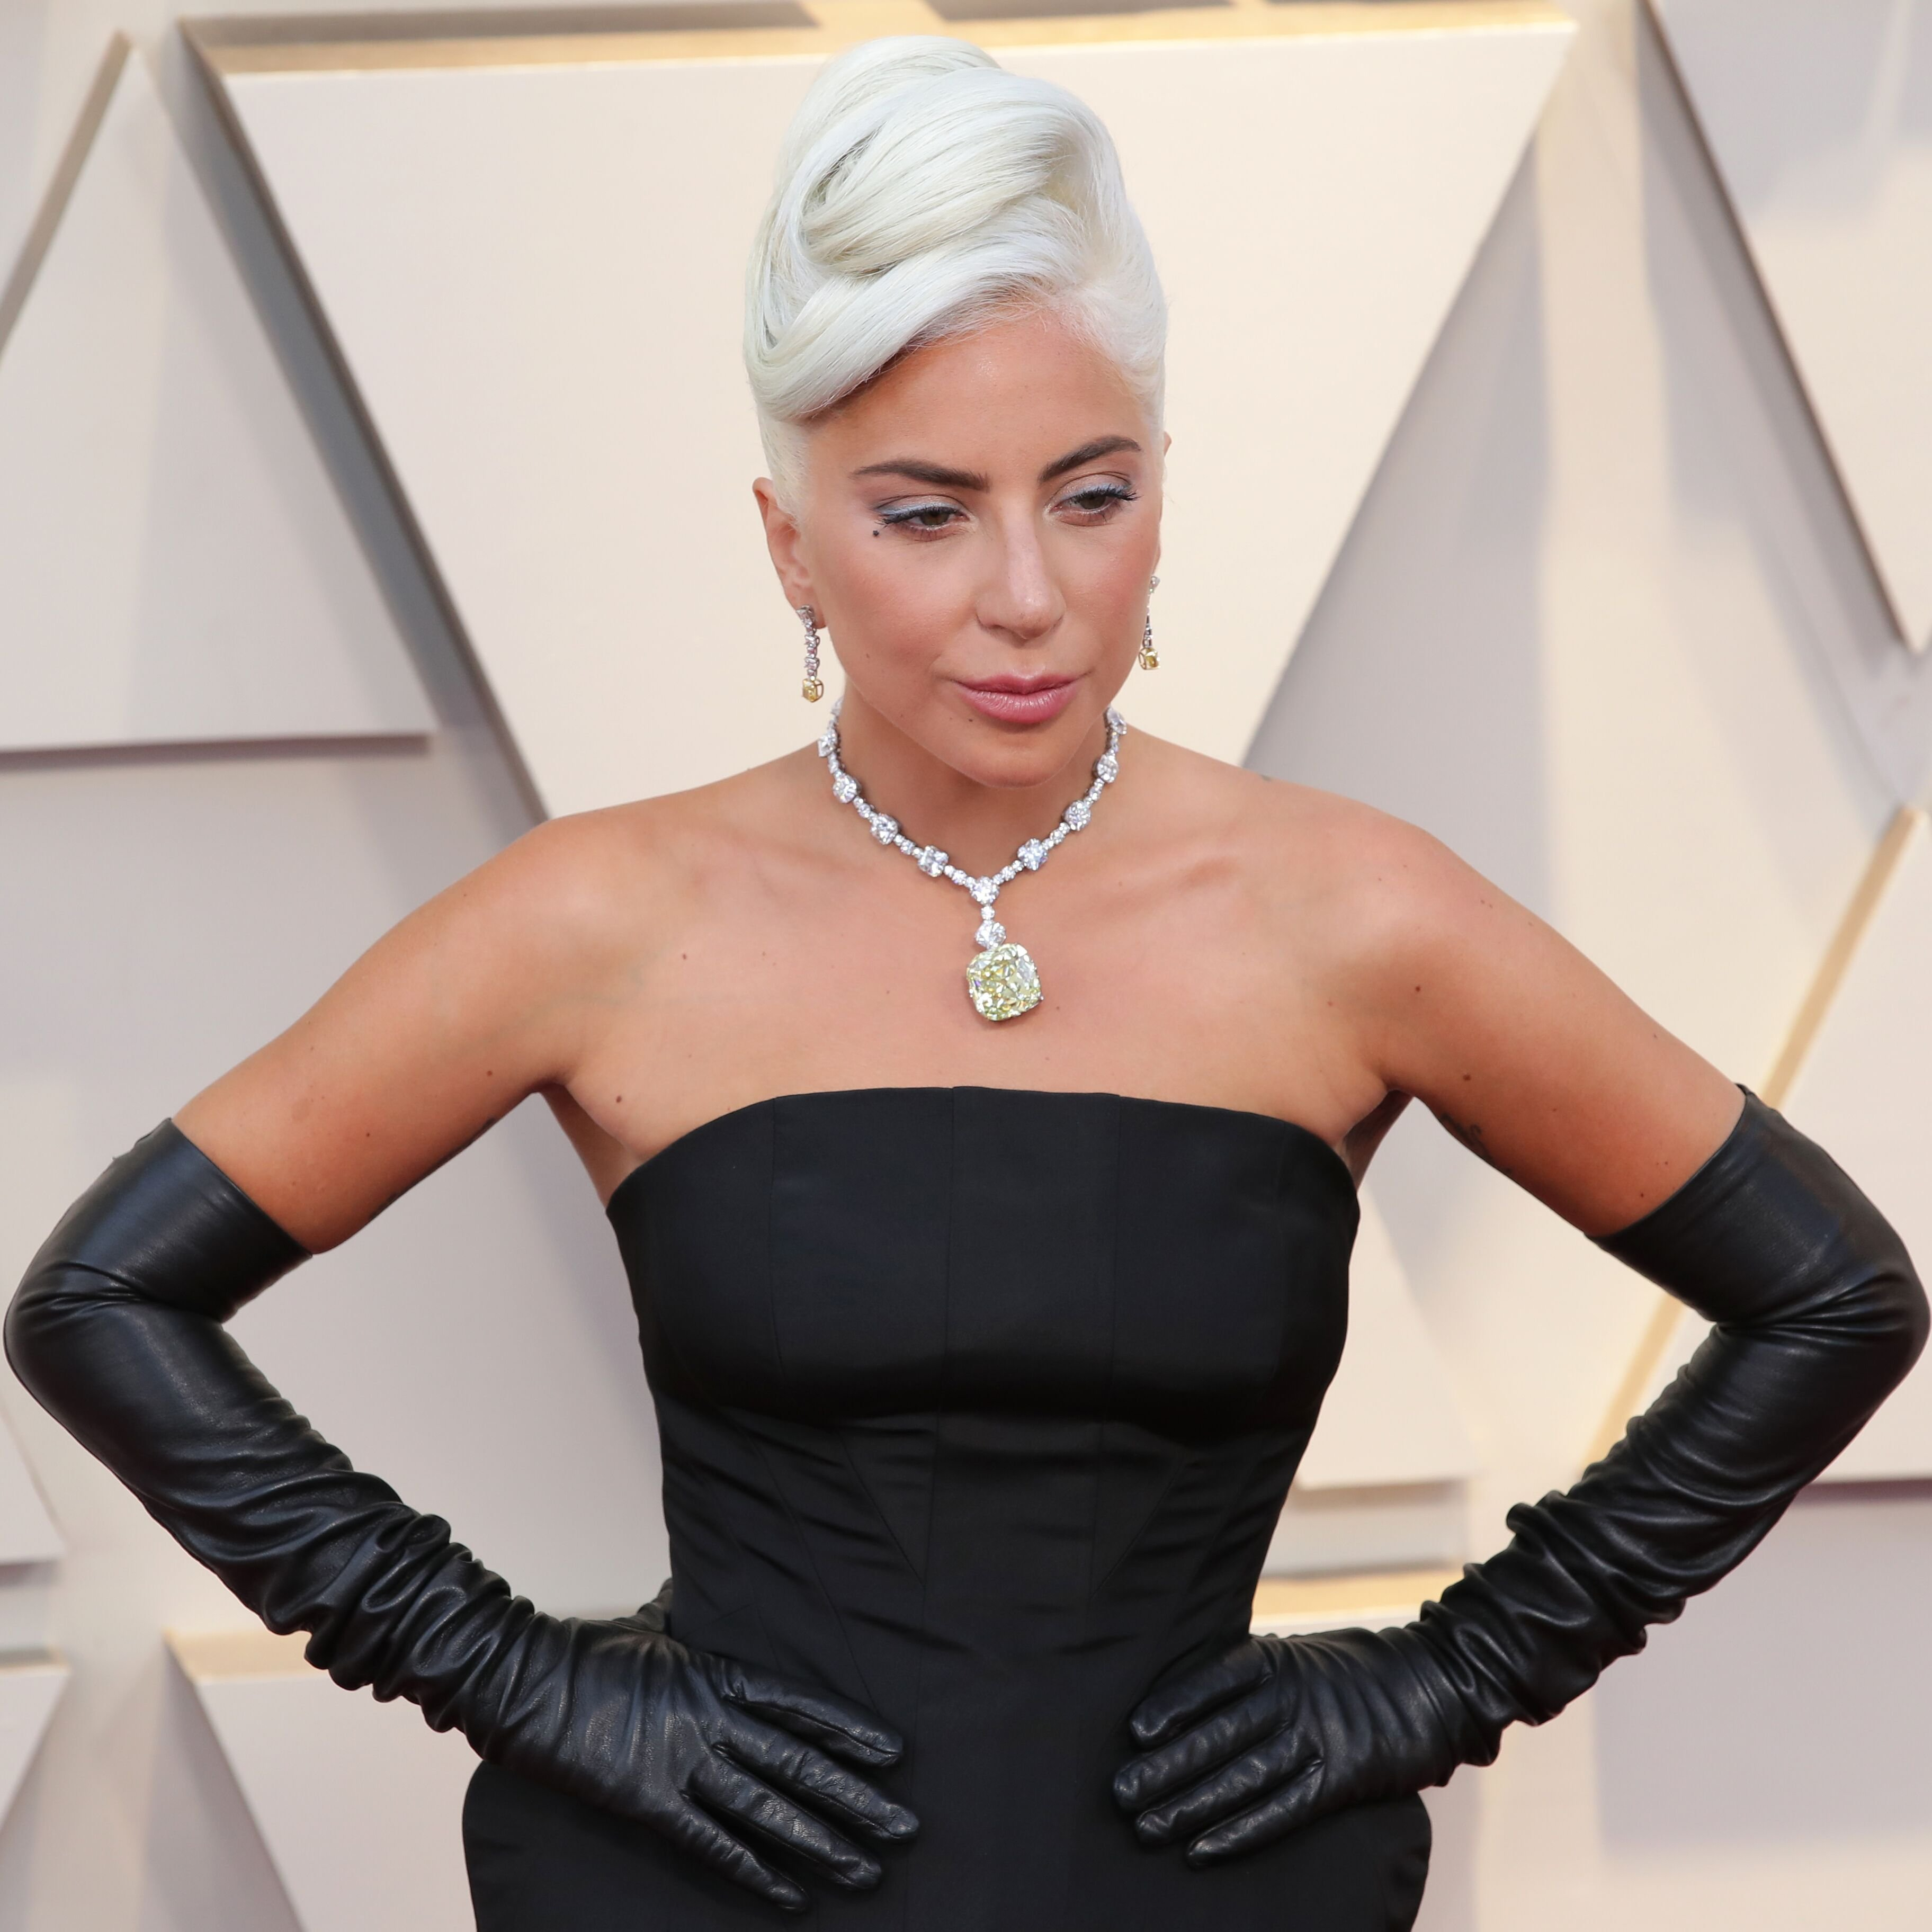 Lady Gaga attends the 91st Annual Academy Awards - Arrivals at Hollywood and Highland on February 24, 2019 in Hollywood, California. | Source: Getty Images